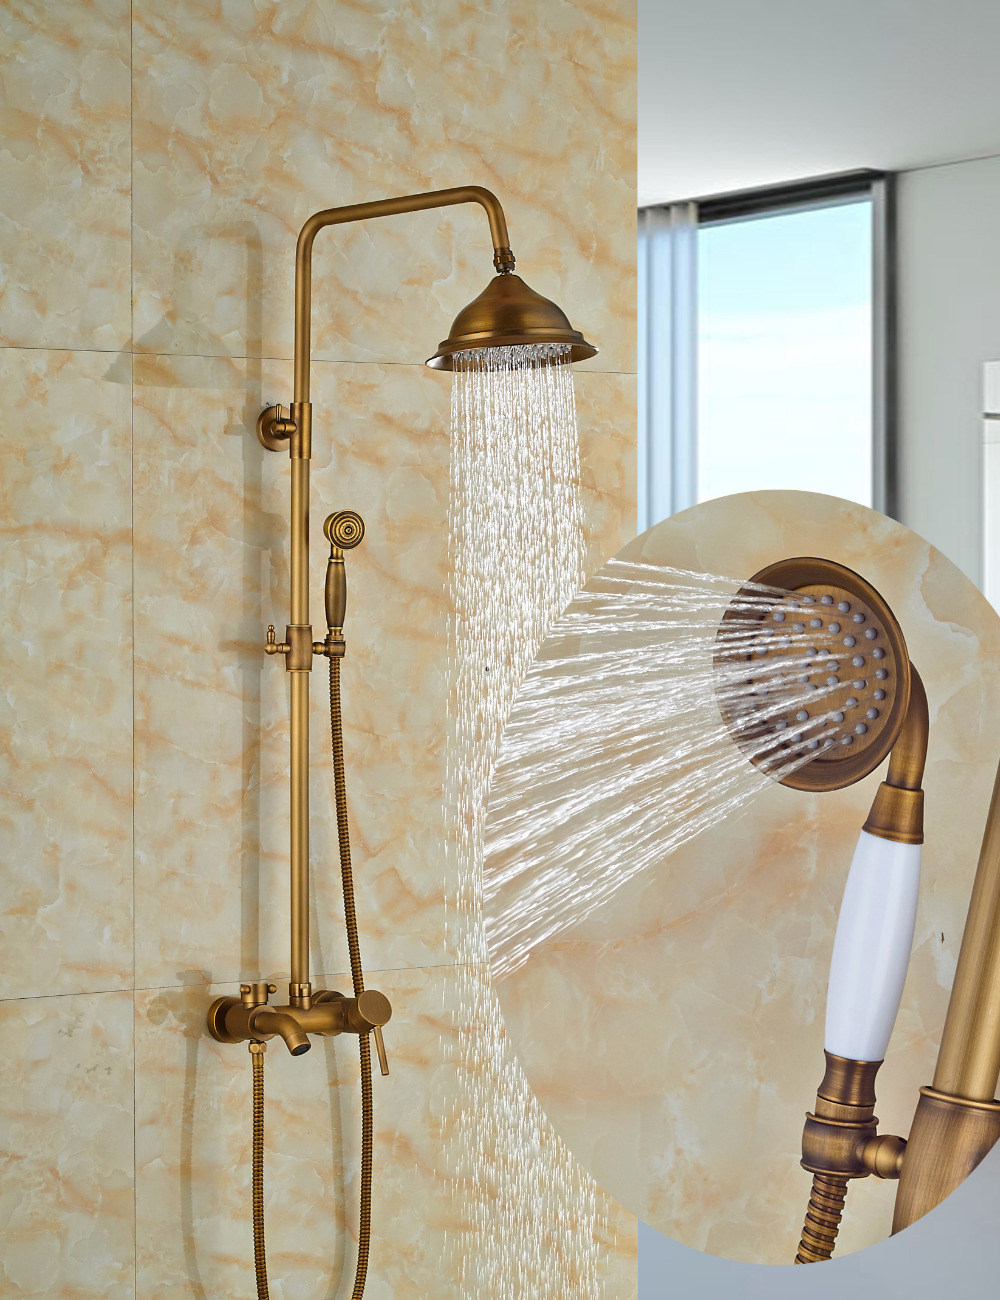 Wholesale And Retail Luxury Antique Brass Rain Set Faucet Tub Spout Mixer Tap W/ Hand Shower Sprayer Wall Mounted